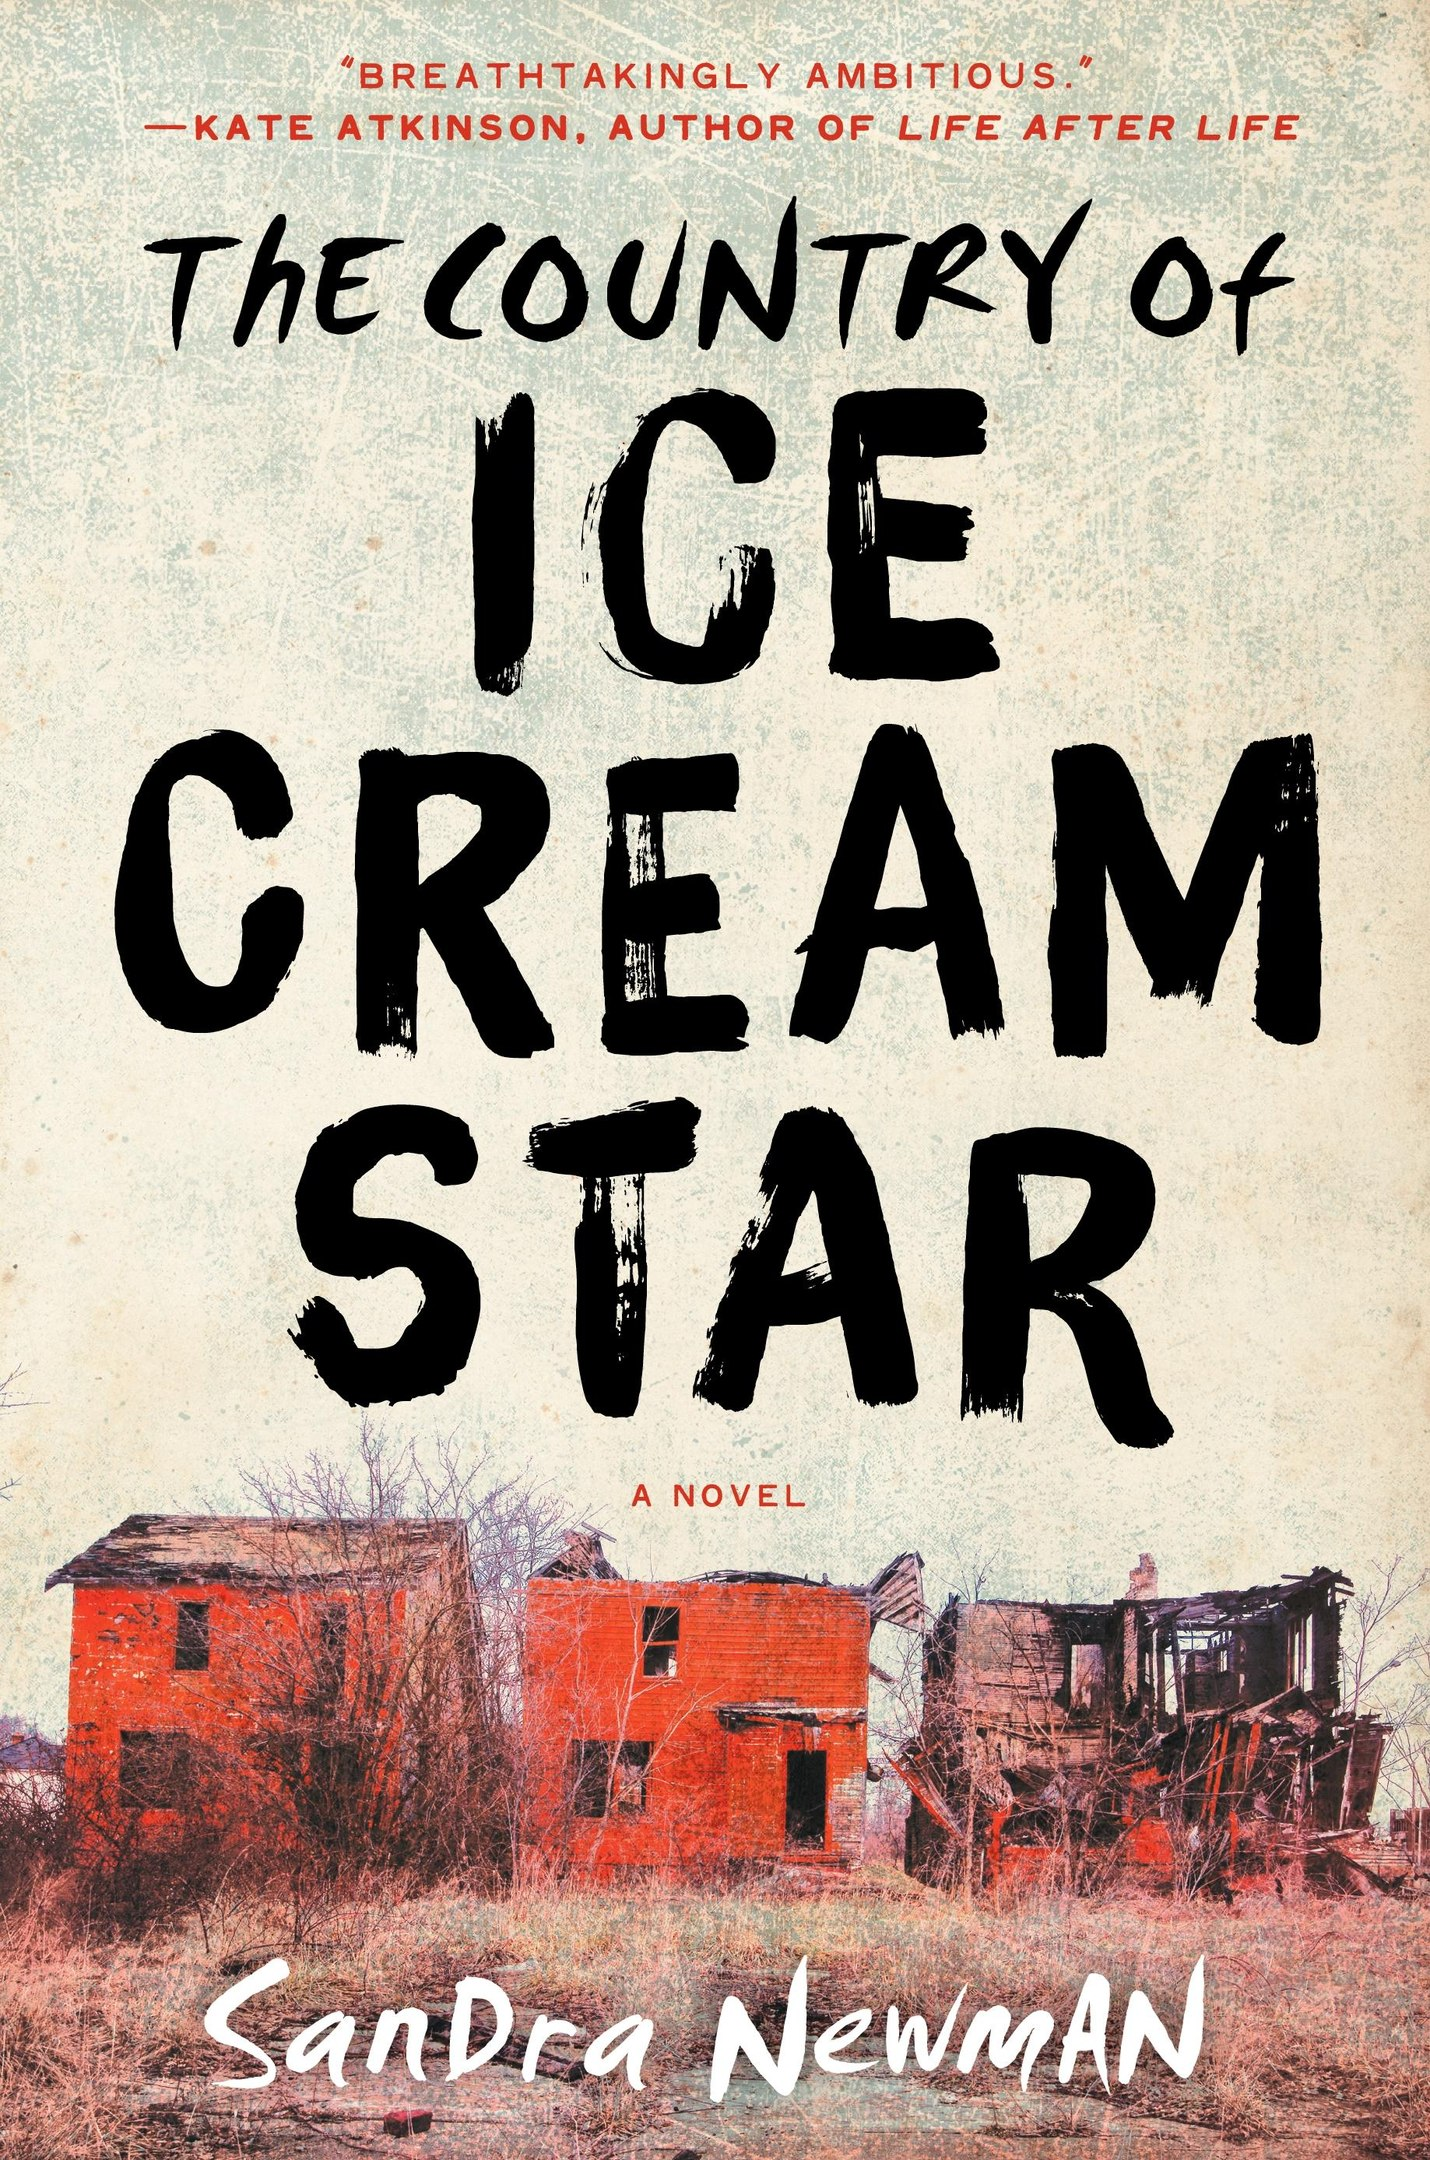 Sandra Newman – The Country Of Ice Cream Star